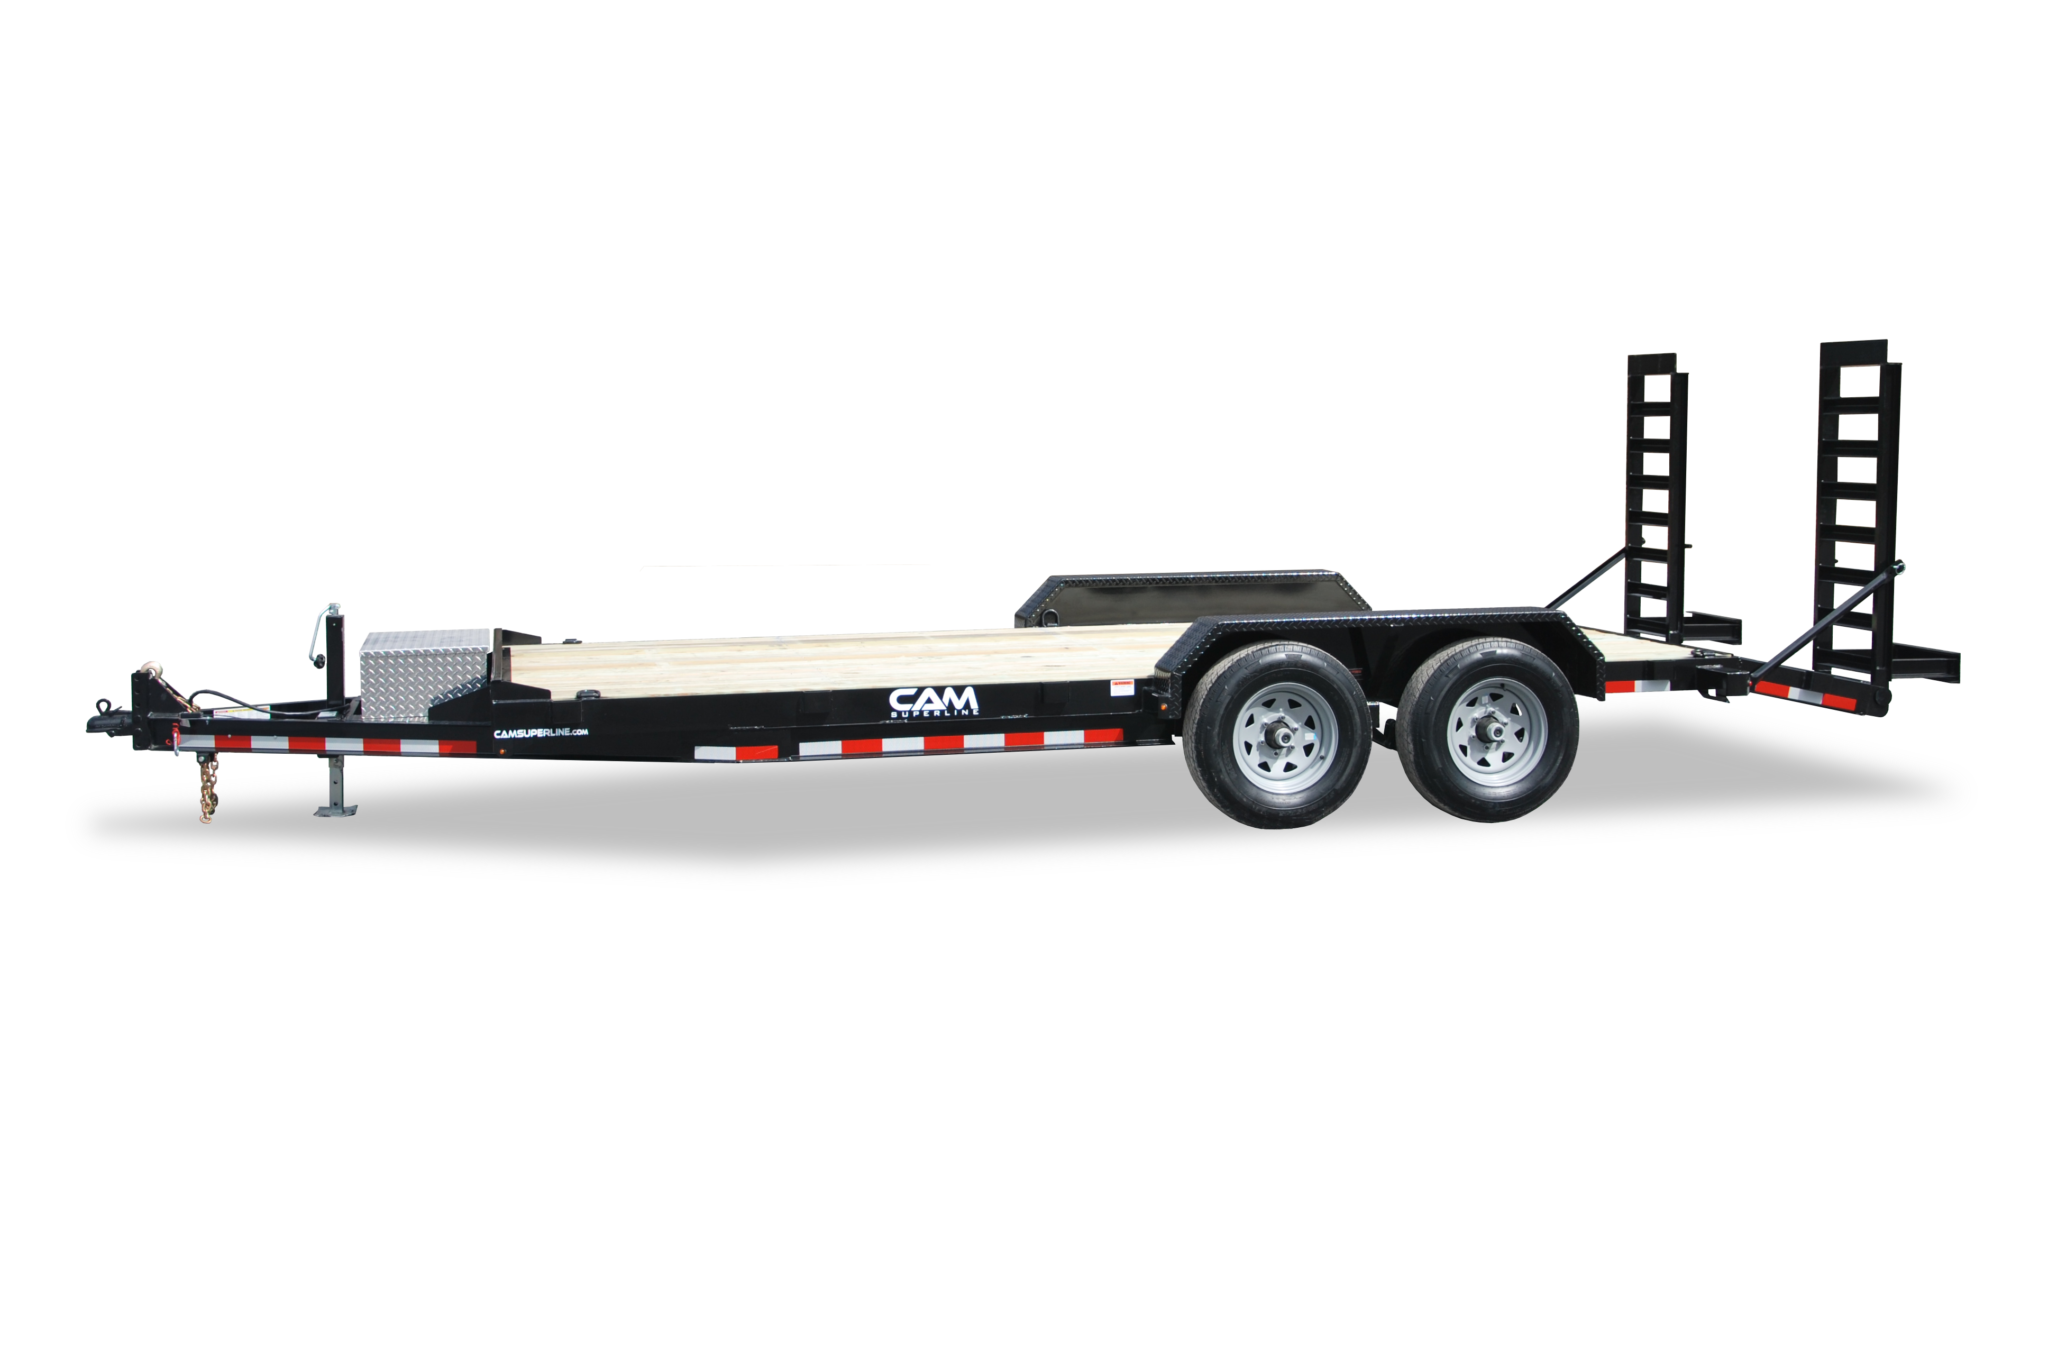 2019 Cam Superline 8.5 X 18 5 Ton Equipment Hauler